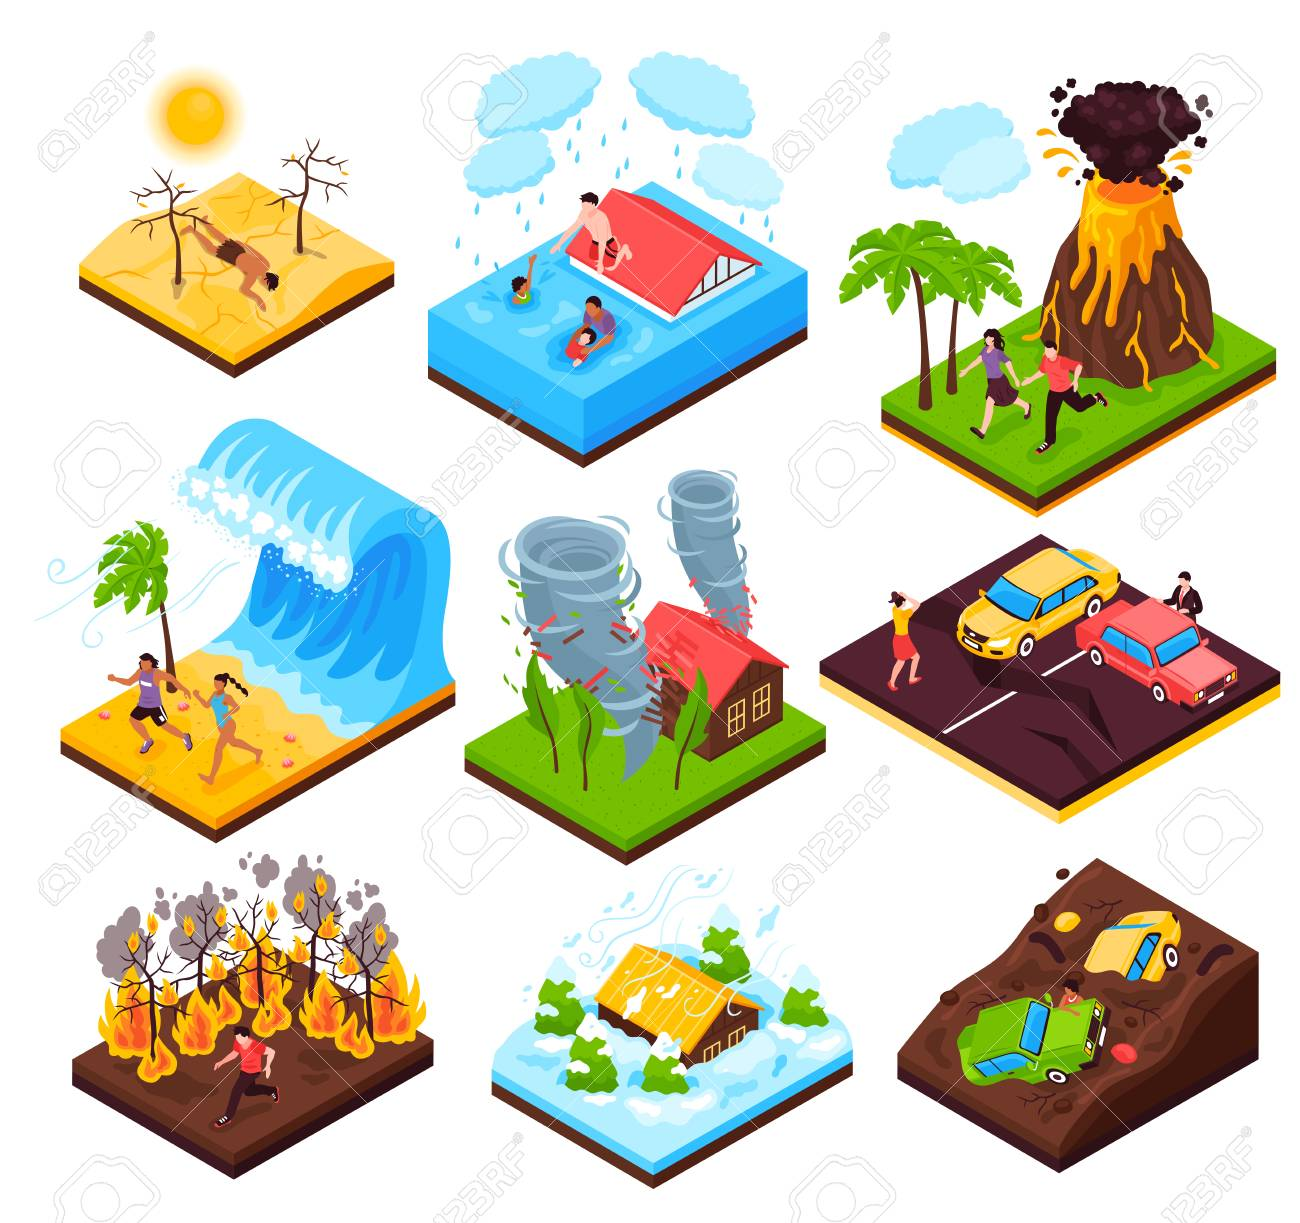 Natural disaster set of eruption wildfire flood tornado drought tsunami isometric compositions isolated vector illustration - 113030567